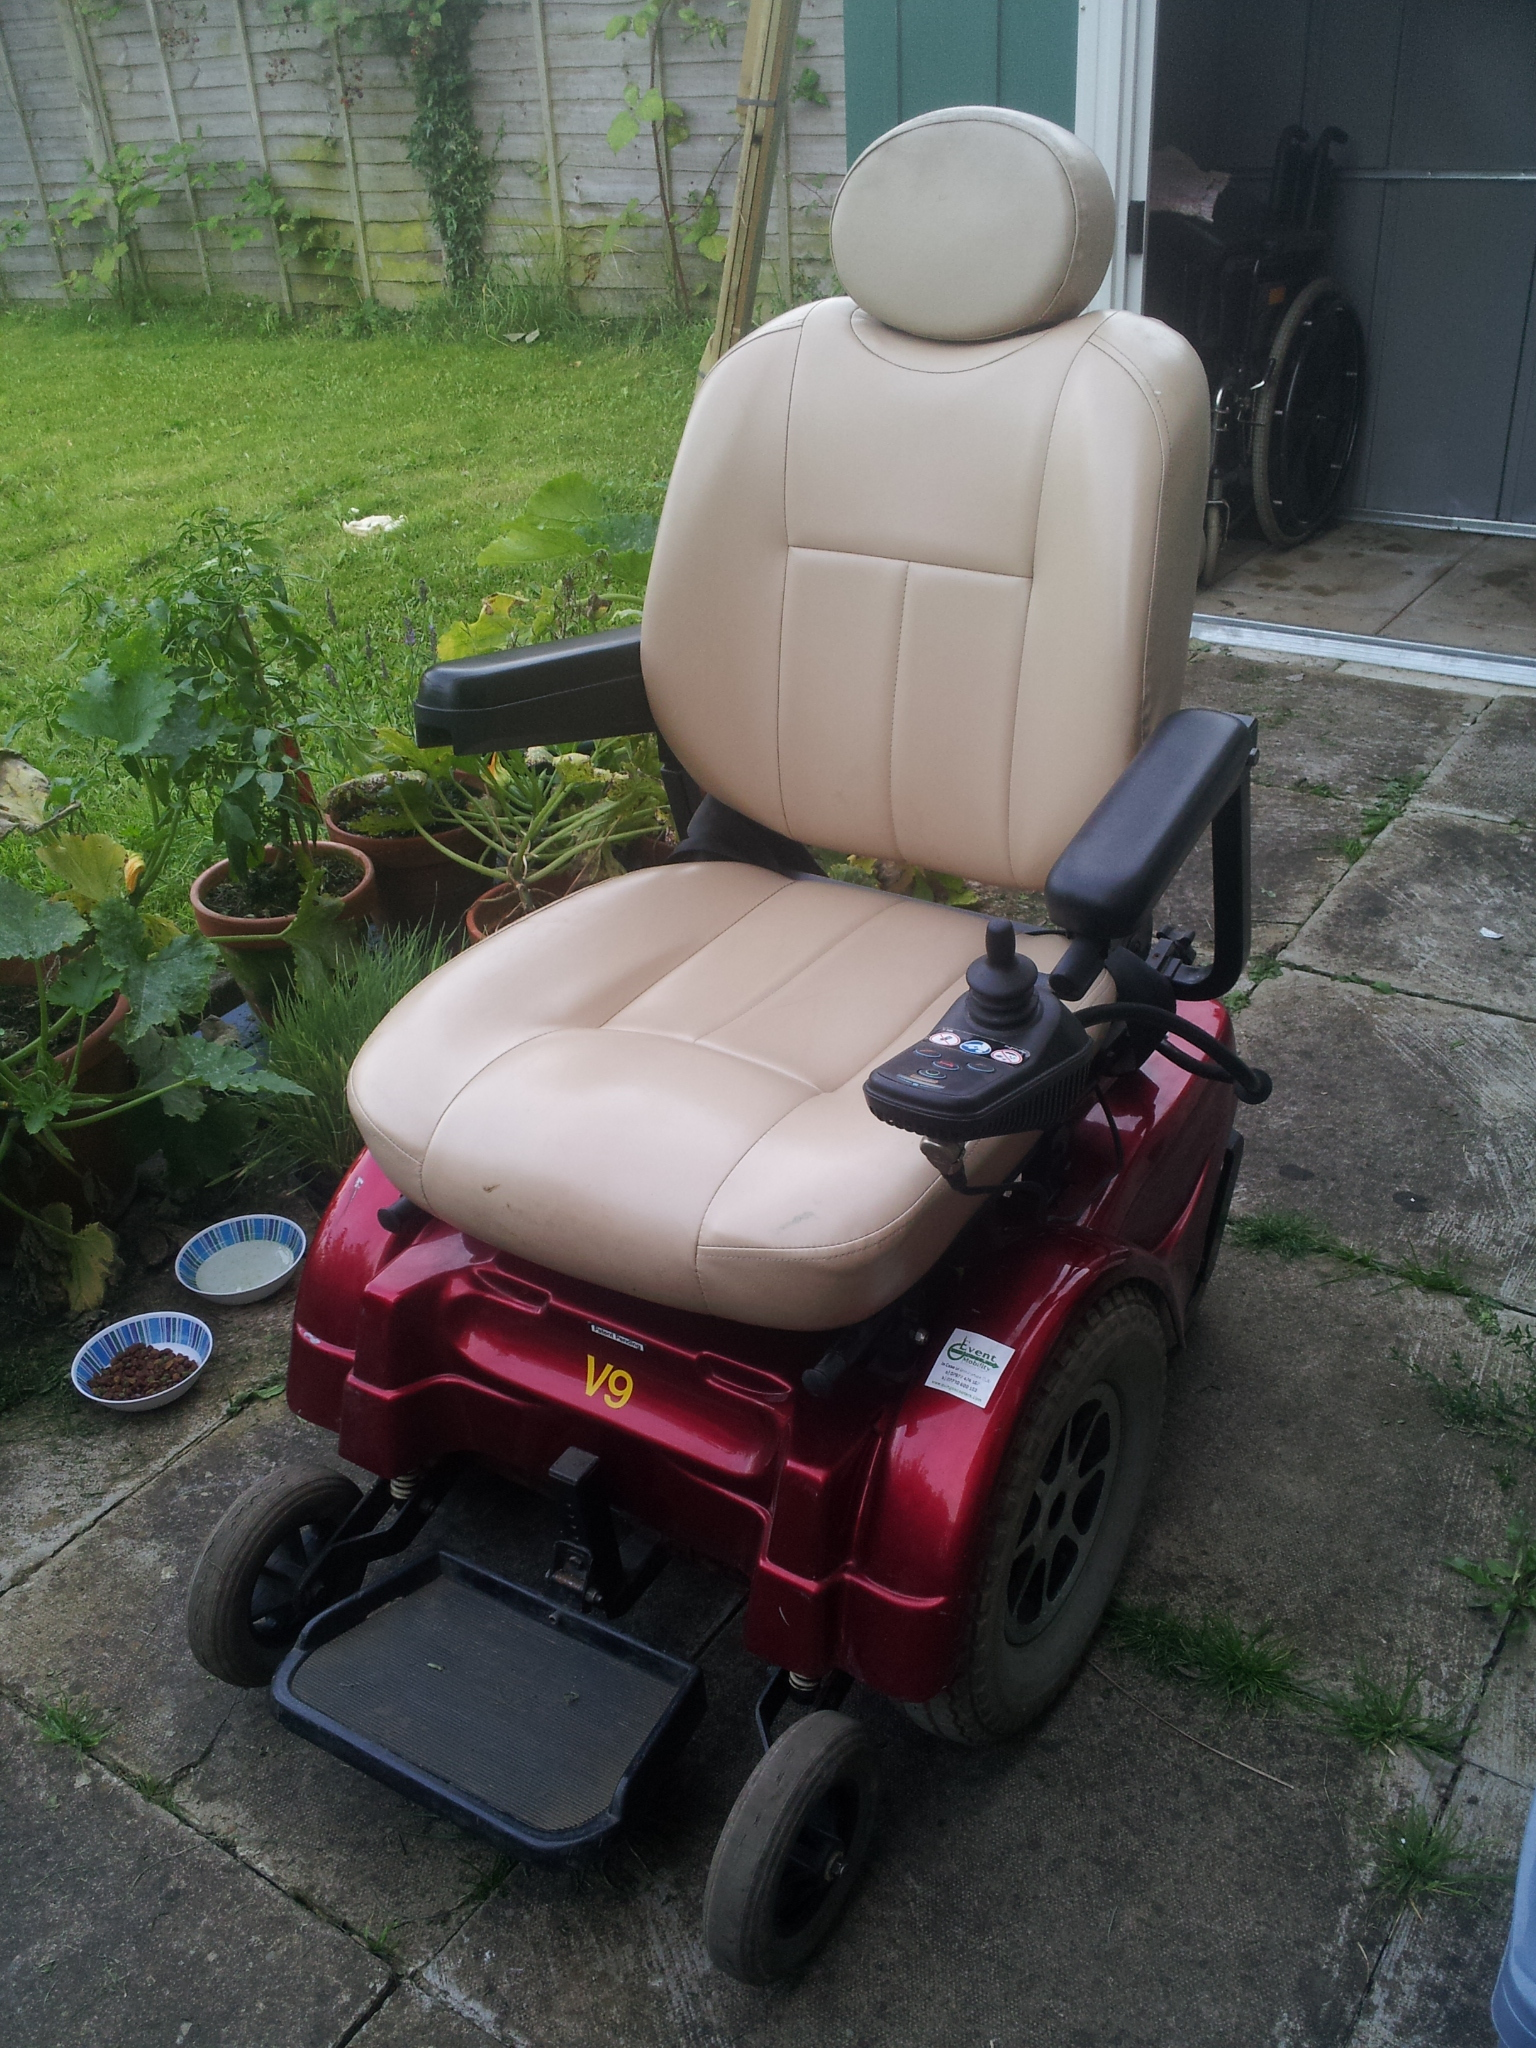 Please help – I need an electric wheelchair – A Latent Existence